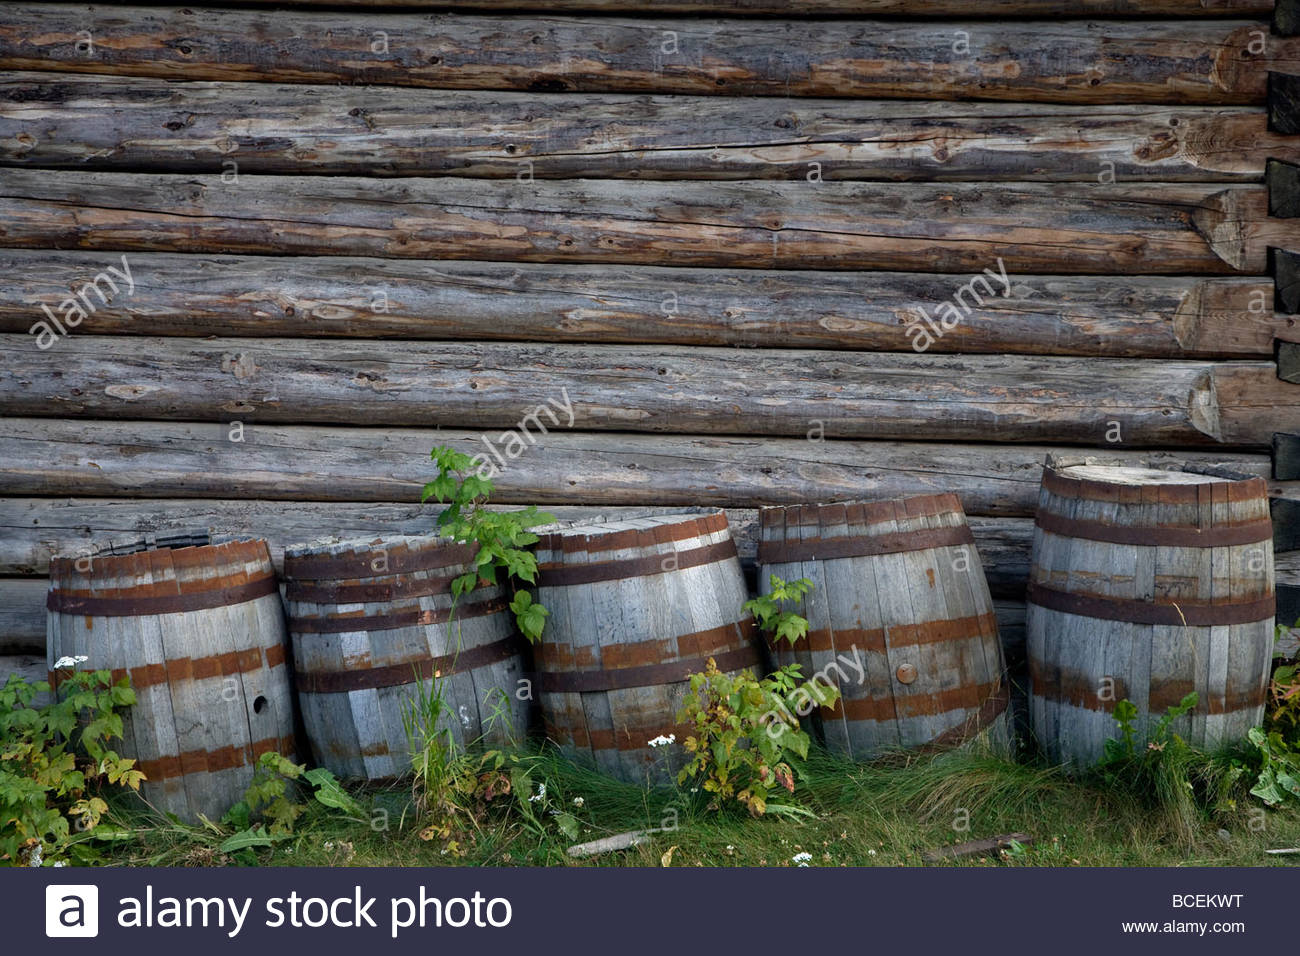 Old wooden moonshine barrels are stored against a wall of a log cabin. Stock Photo